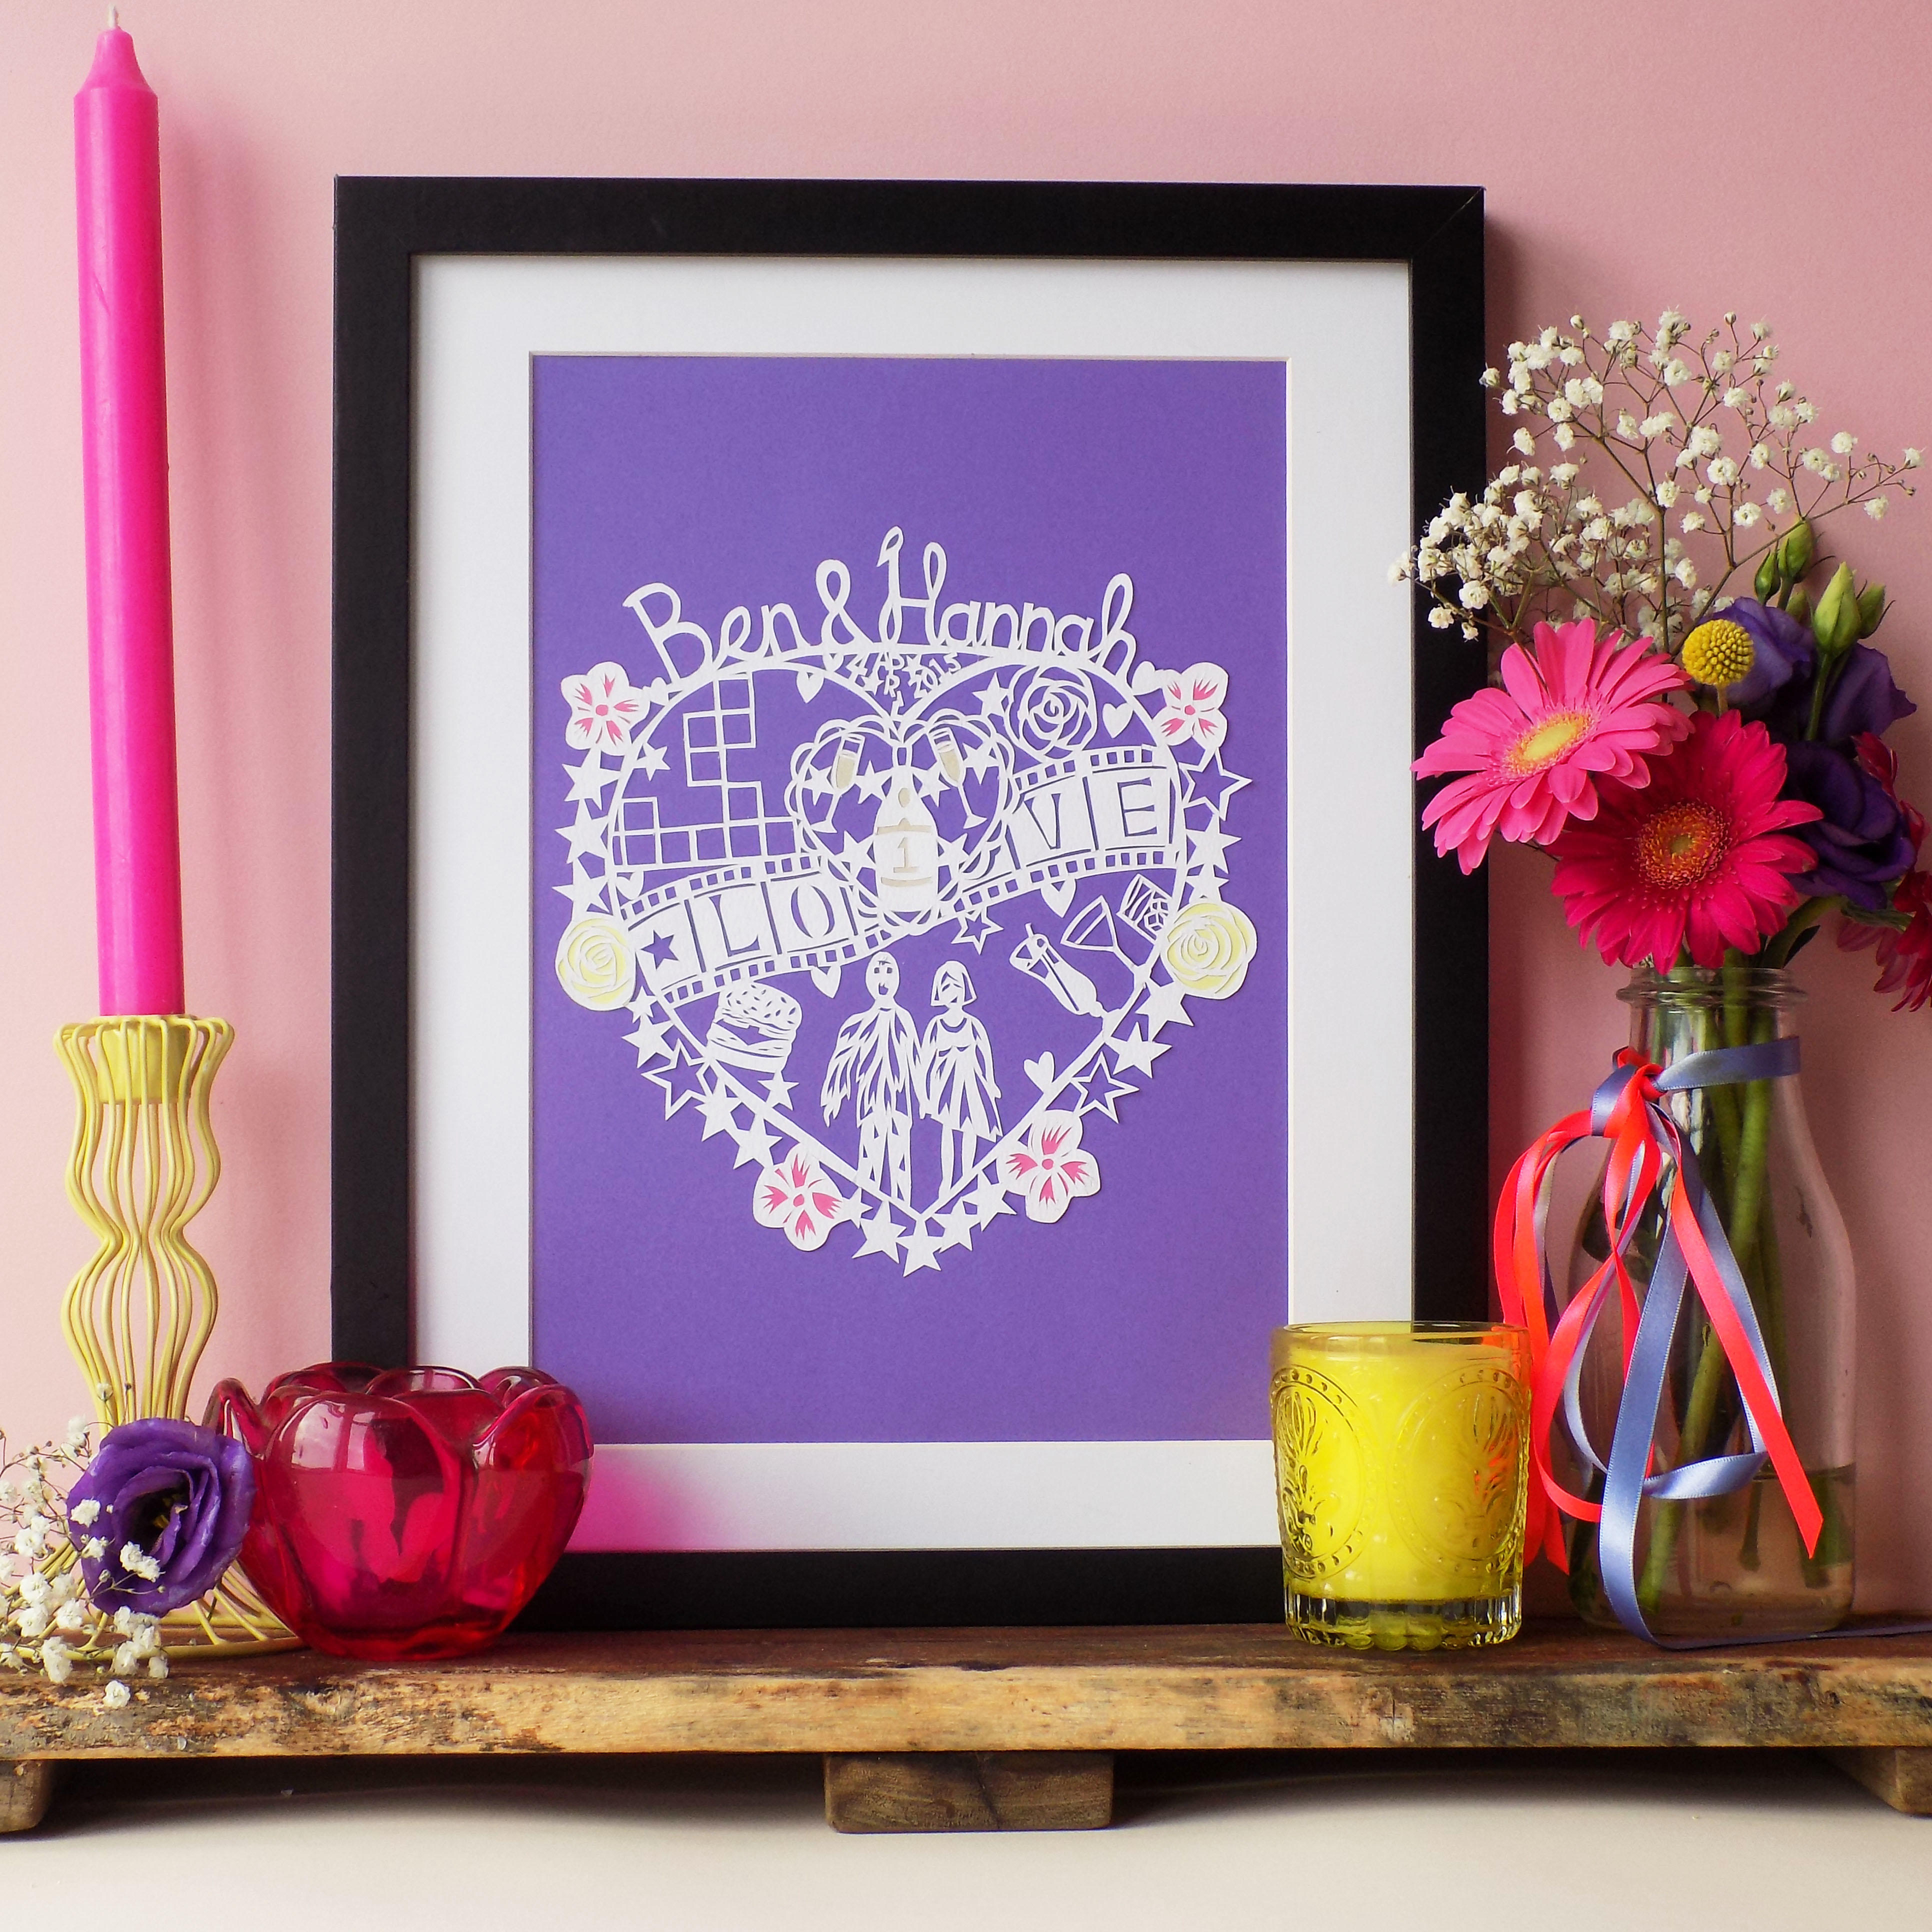 A hand drawn hand cut paper cut love heart featuring a song lyric, a special date, the couples names, and five small illustrations of their favourite things with a starry outline.